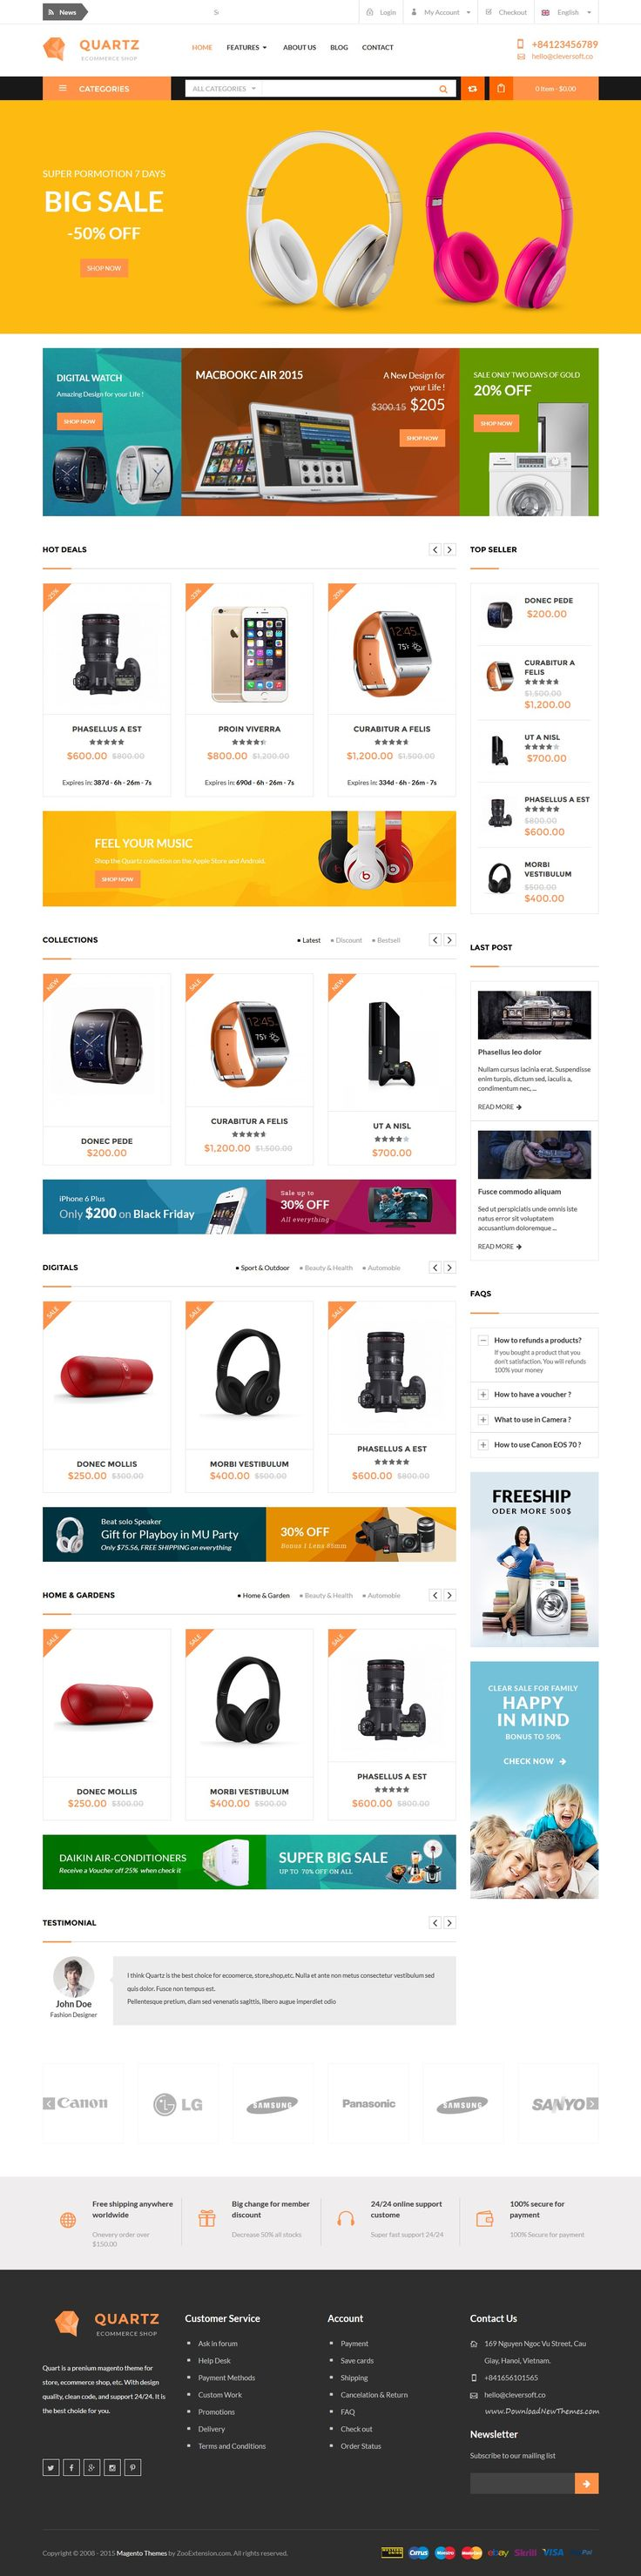 Quartz is premium responsive magento theme #digital #electronics #eCommerce #shop #website